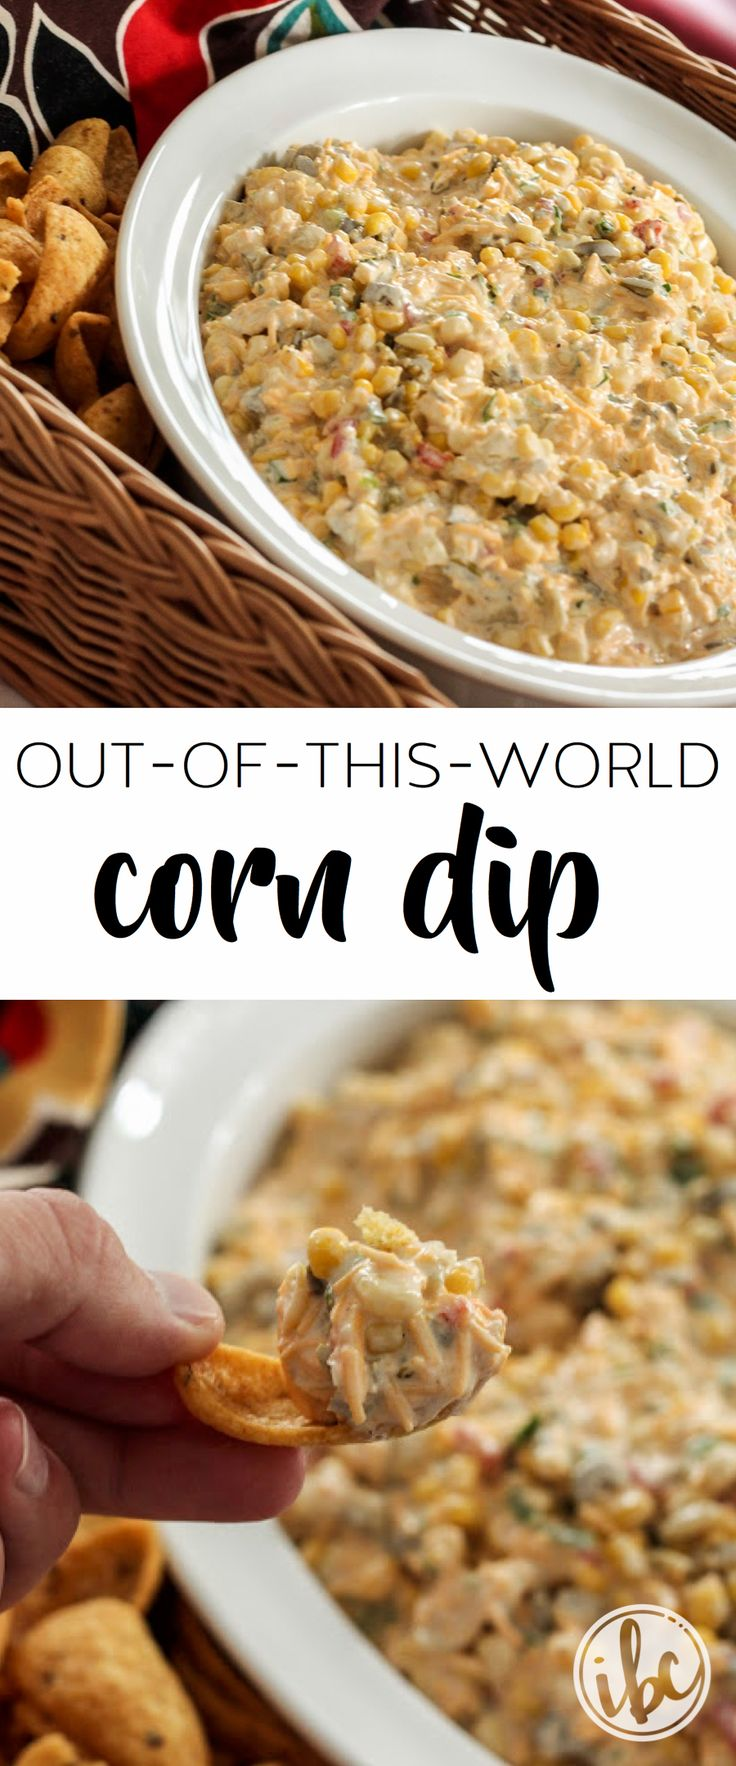 THE BEST APPETIZER!! Out-of-this-World Corn Dip. Everyone LOVES it! via Inspired by Charm